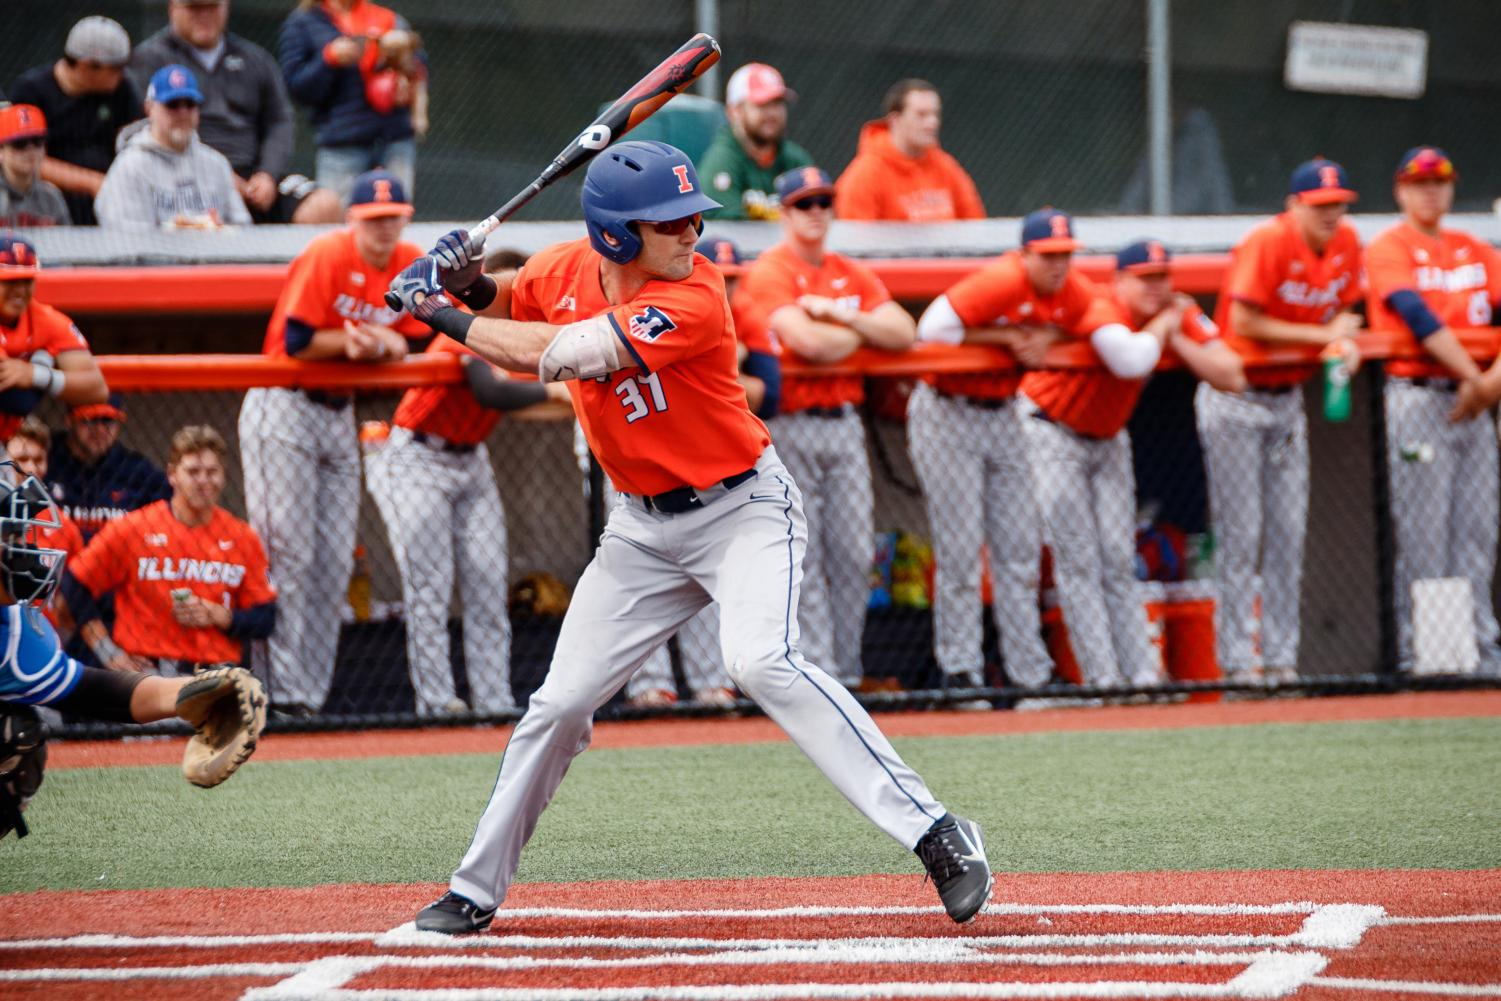 Illinois outfielder Zac Taylor gets ready to swing at the pitch during the exhibition game against Indiana State at Illinois Field on Saturday. The Illini tied 5-5.